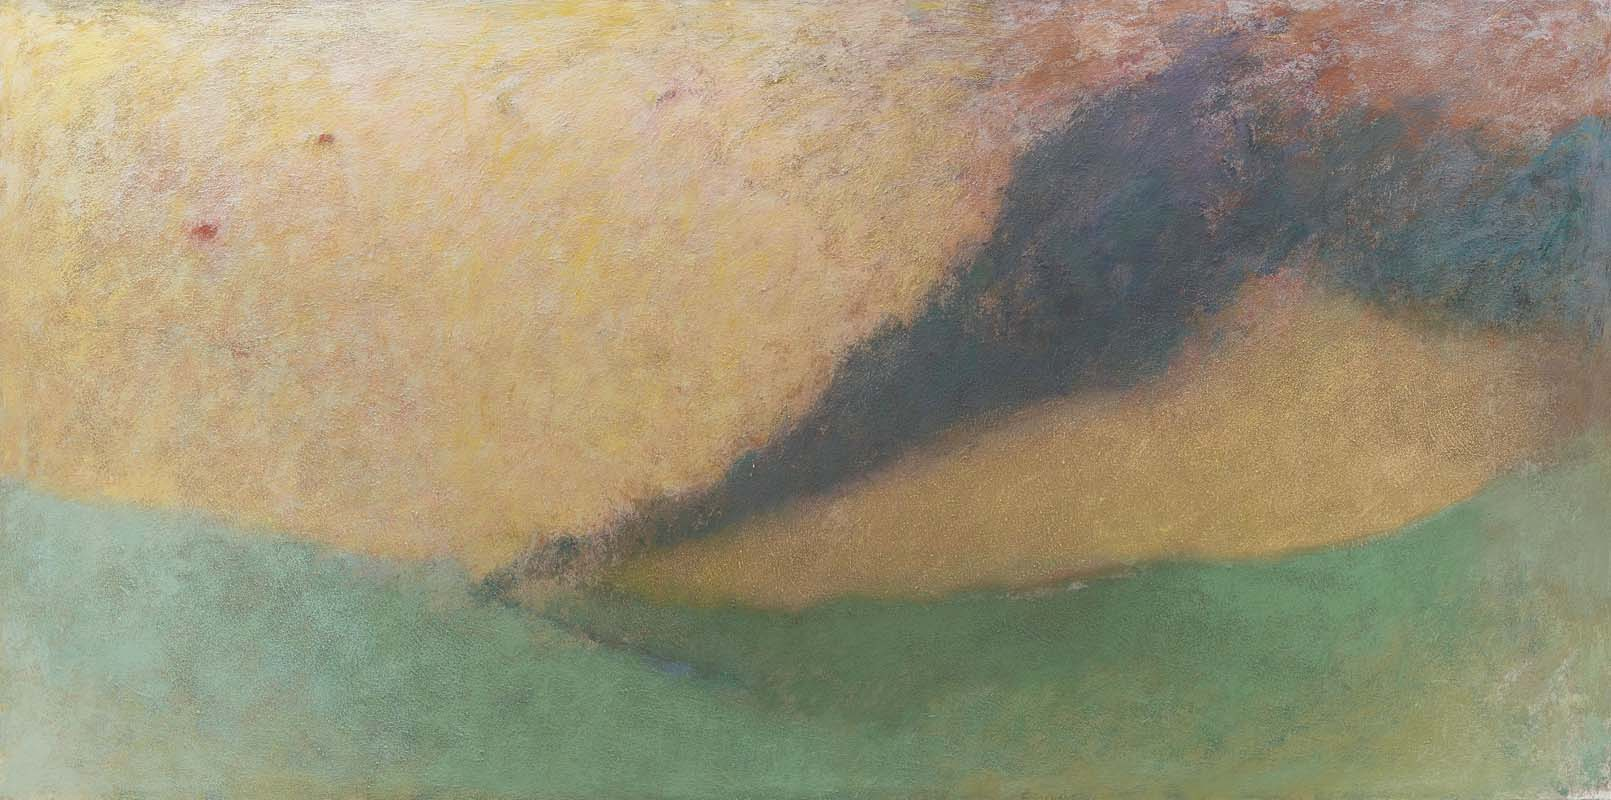 Works by de Groen at Annandale Galleries